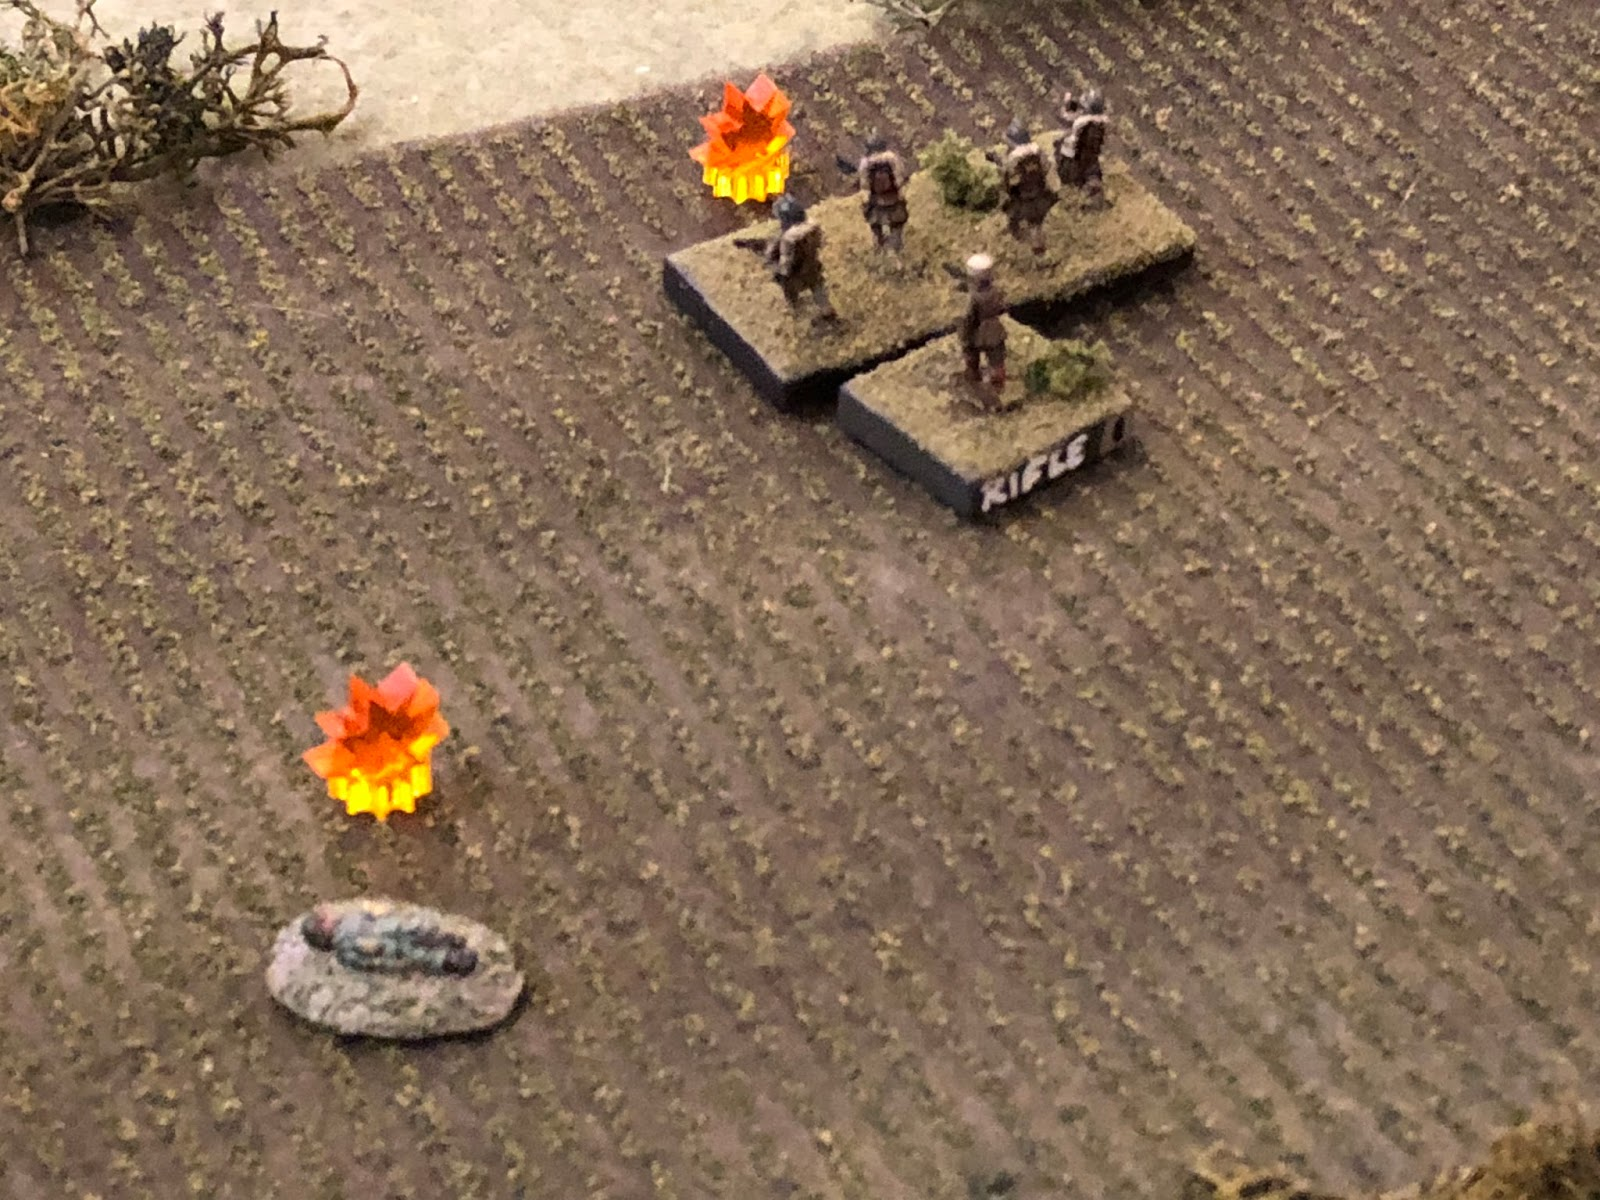 But the fire from the other two Motorcycle Platoon squads is vicious, knocking a French squad out of the fight!  All this shooting, but so far all that's been lost is one German ATG and one French rifle squad.